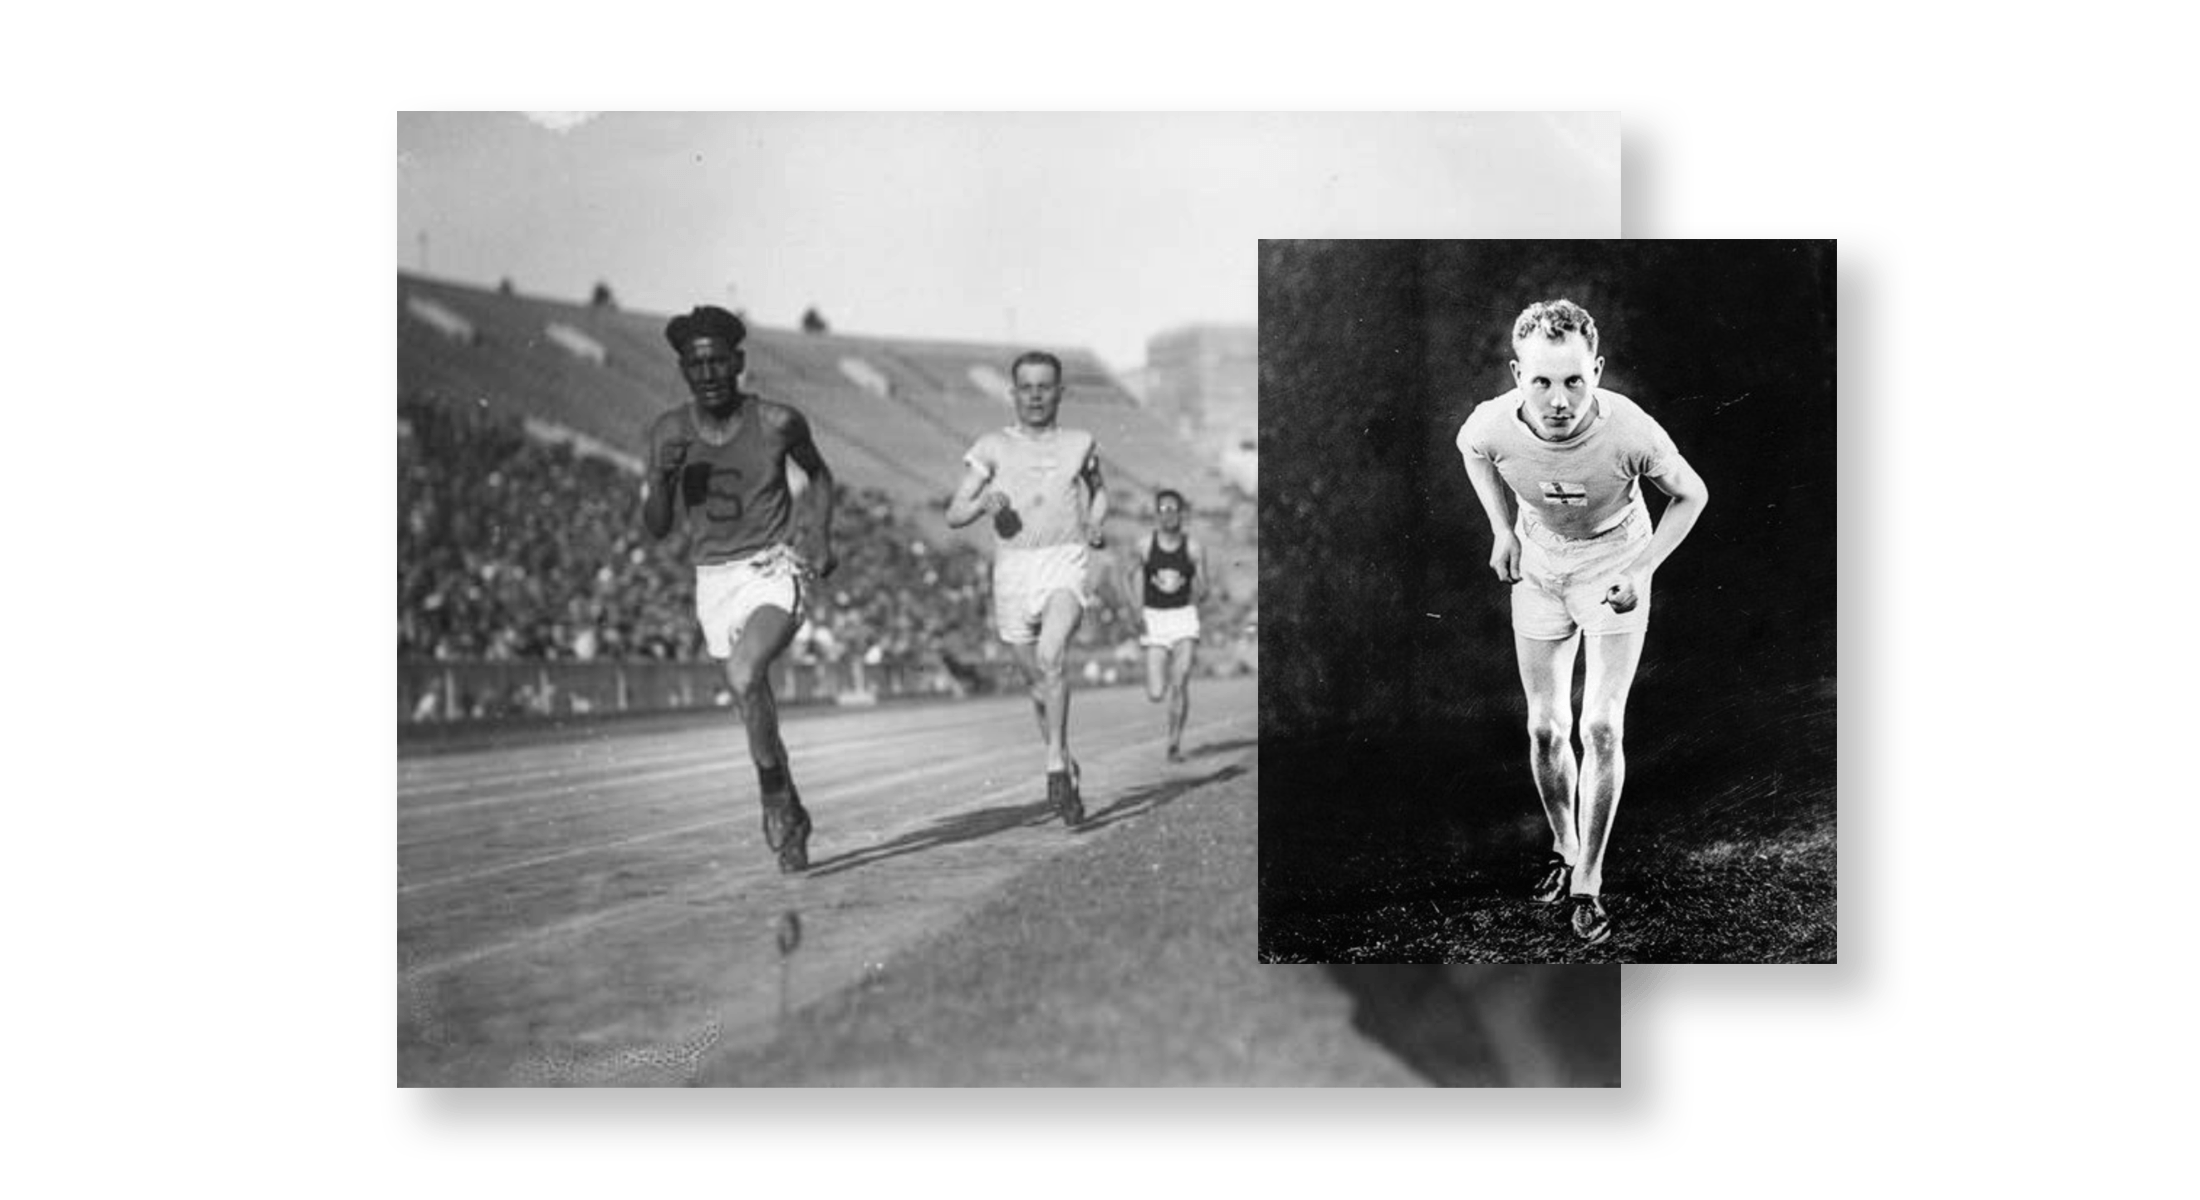 Paavo Nurmi: World's Greatest Distance Runner